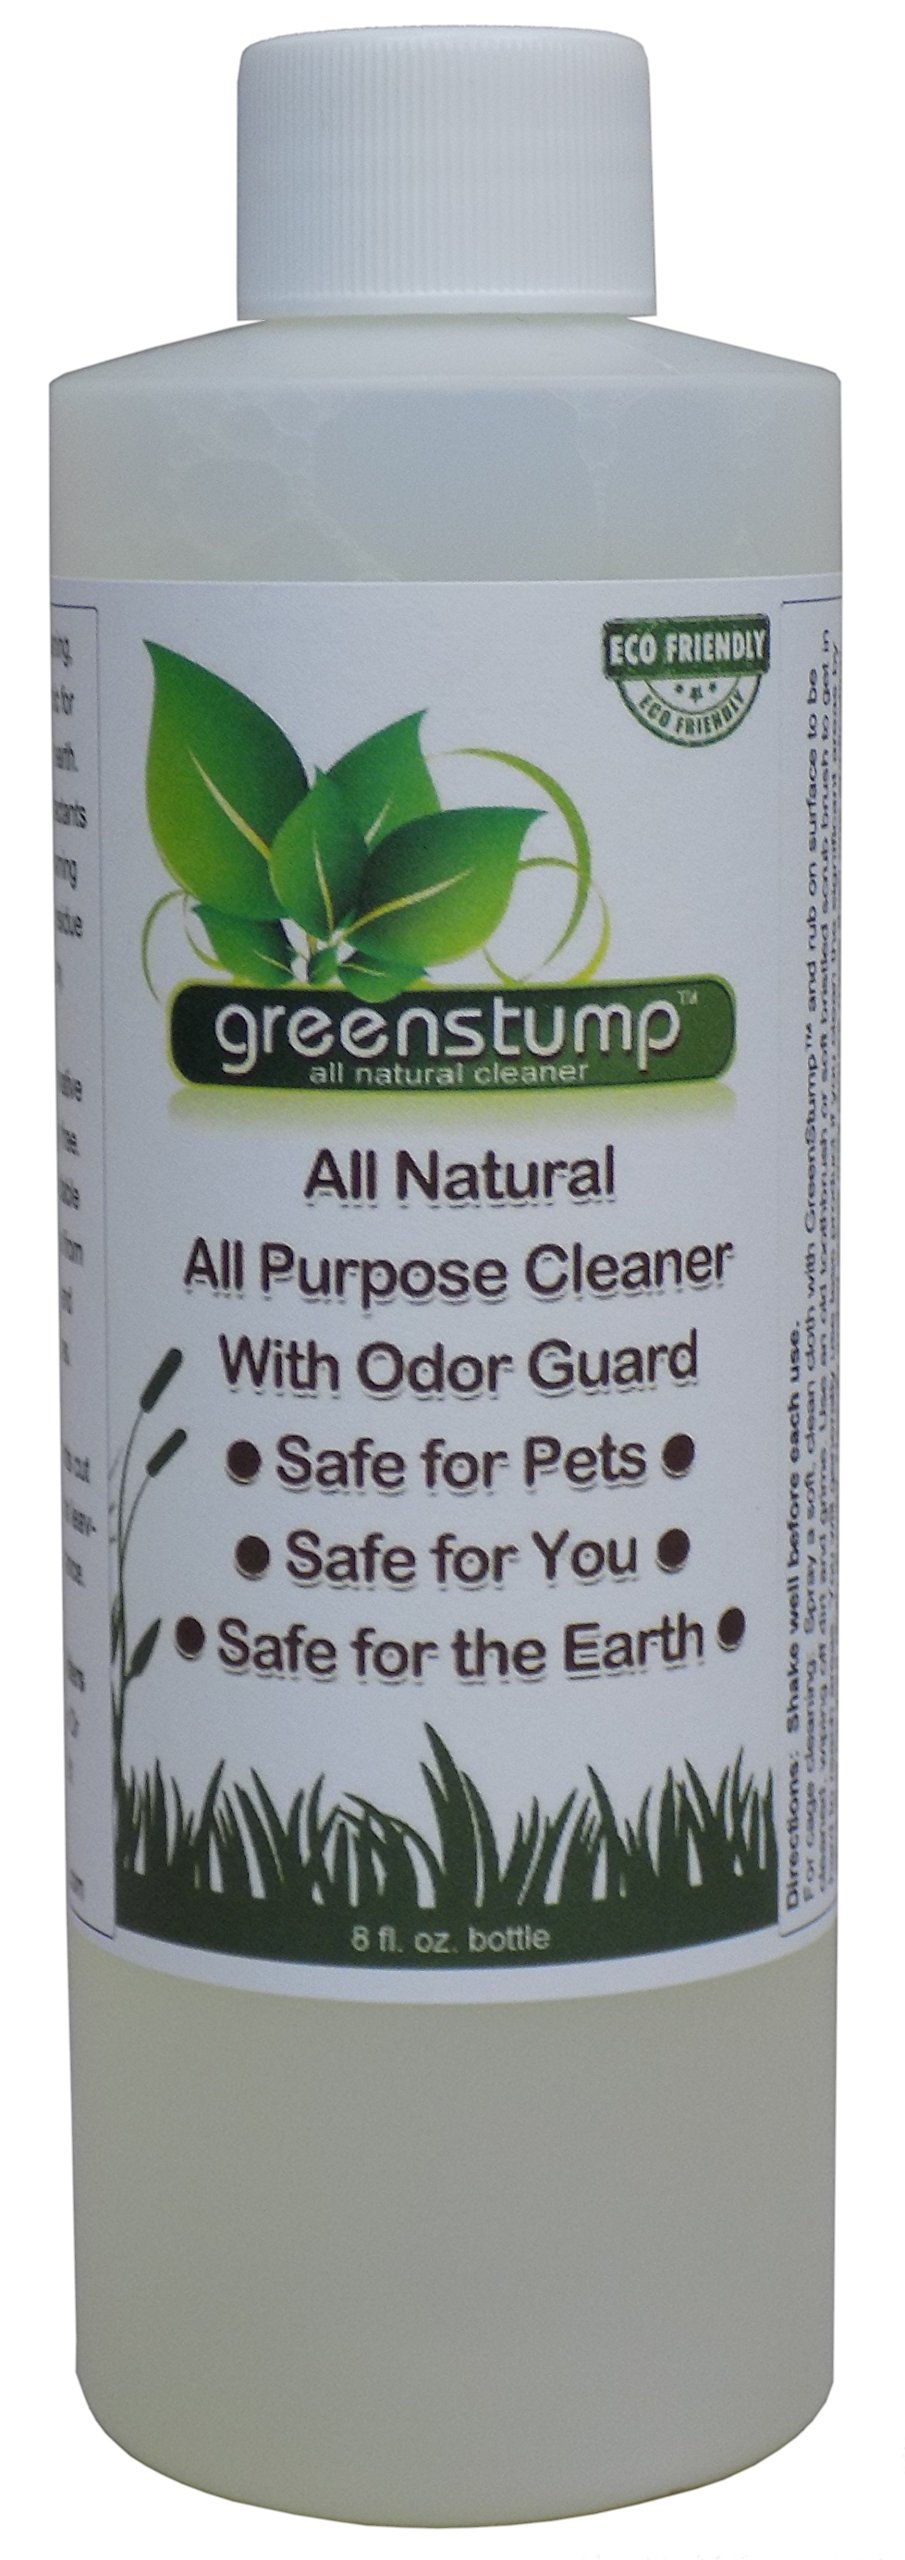 GreenStump 8 oz Pet Cage and Toy Natural Cleaner